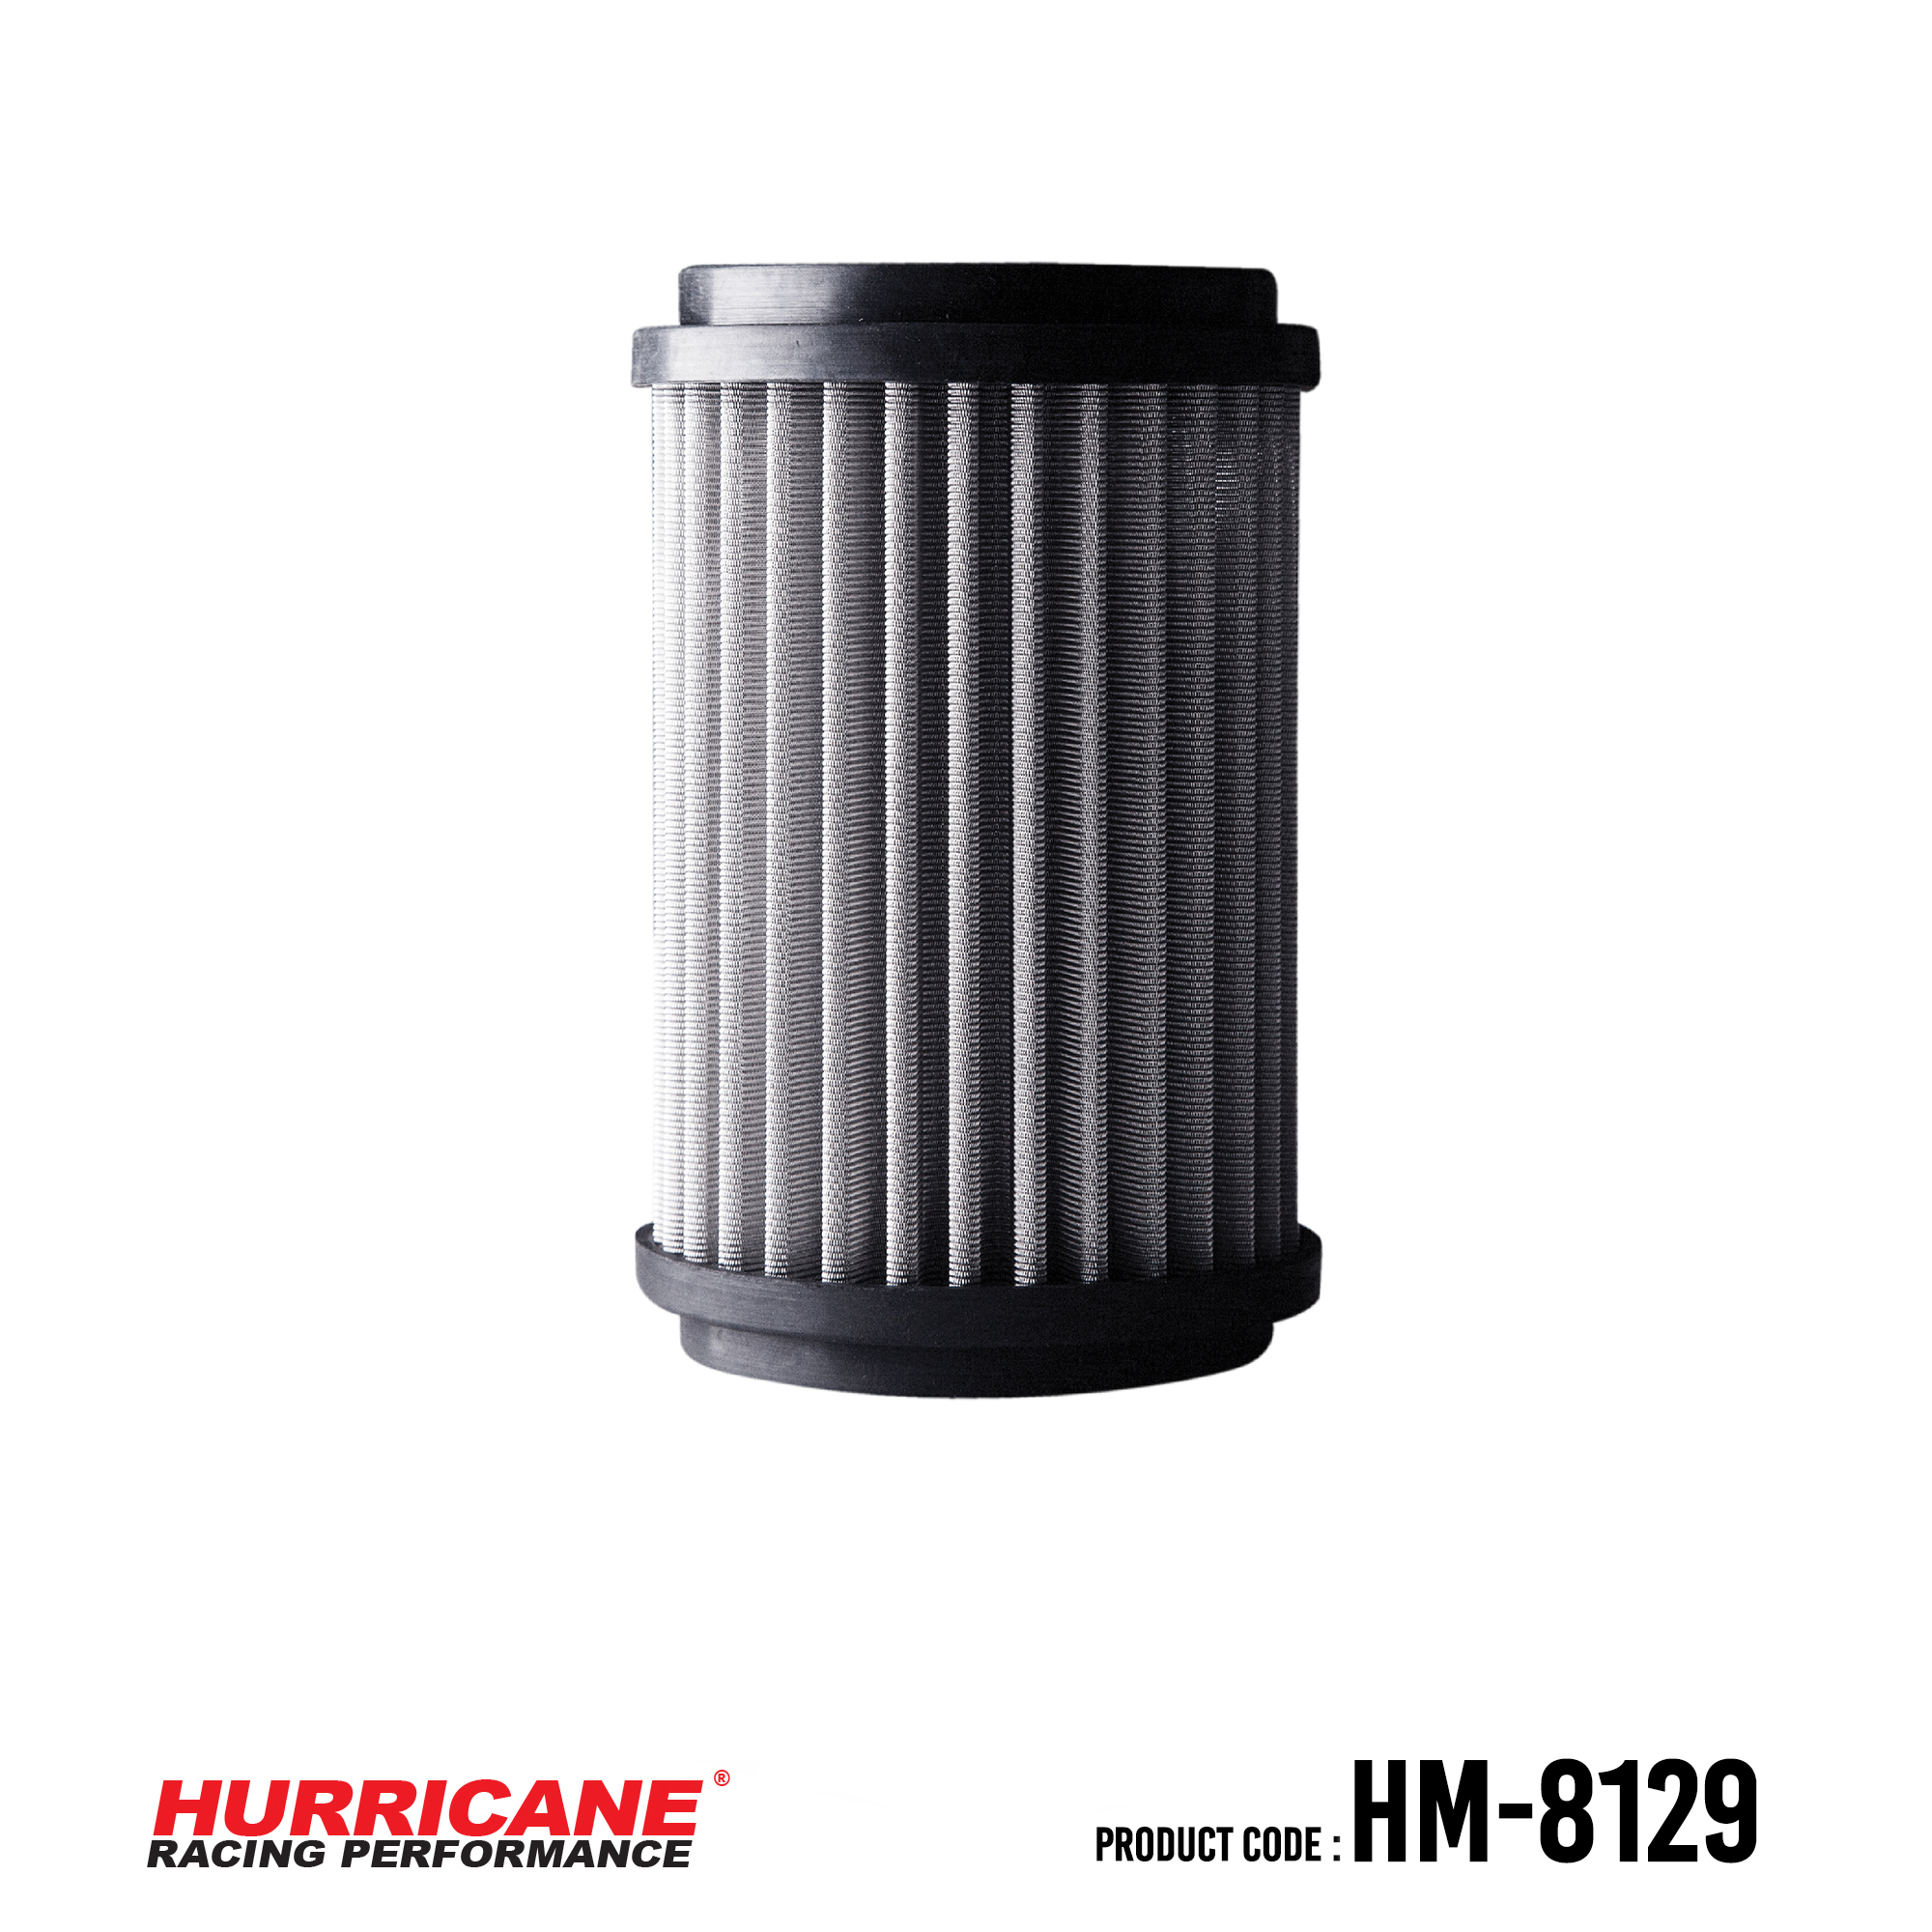 HURRICANE STAINLESS STEEL AIR FILTER FOR HM-8129 Ducati